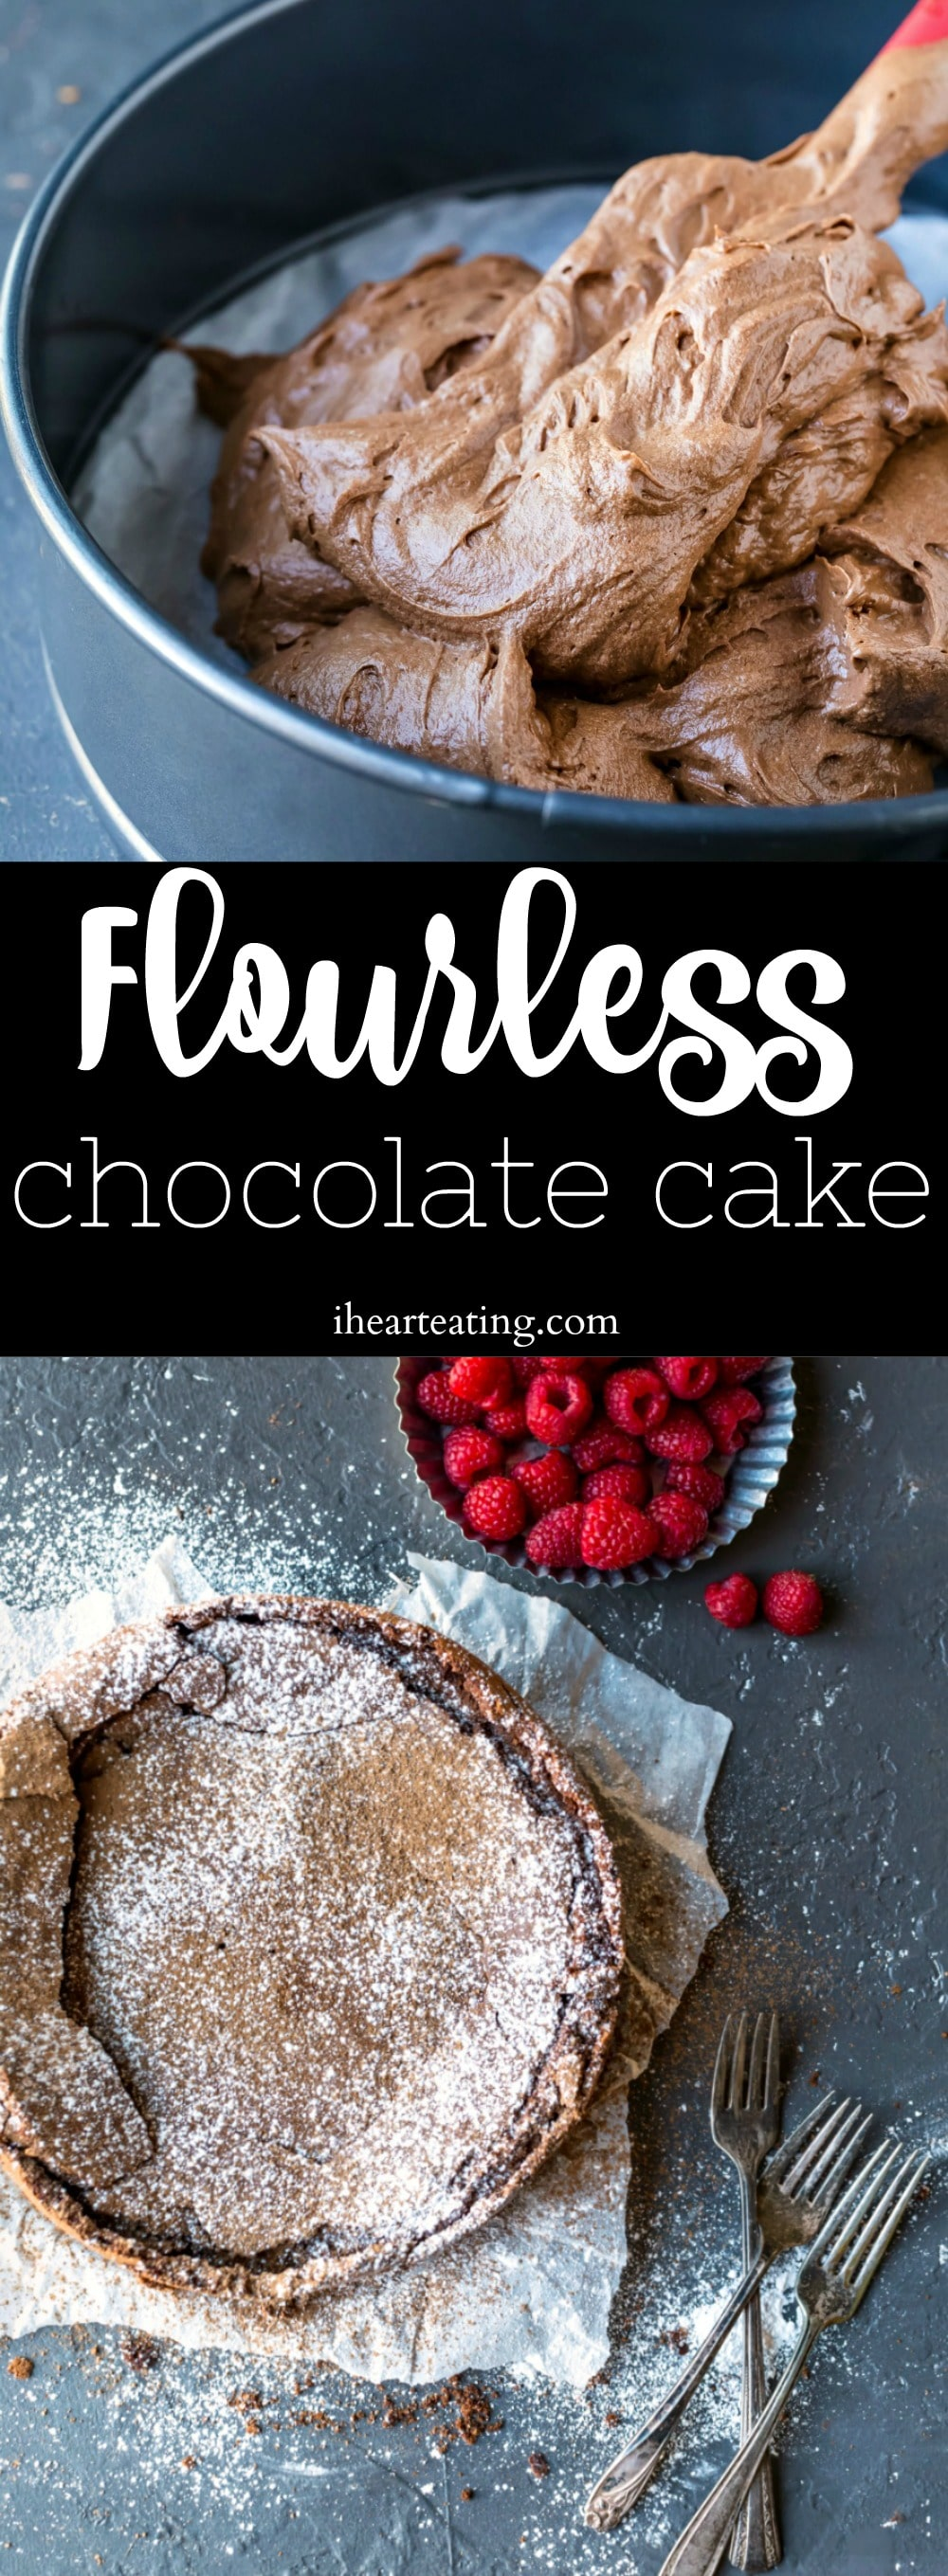 Flourless Chocolate Cake is a rich chocolate cake that's made without any flour.